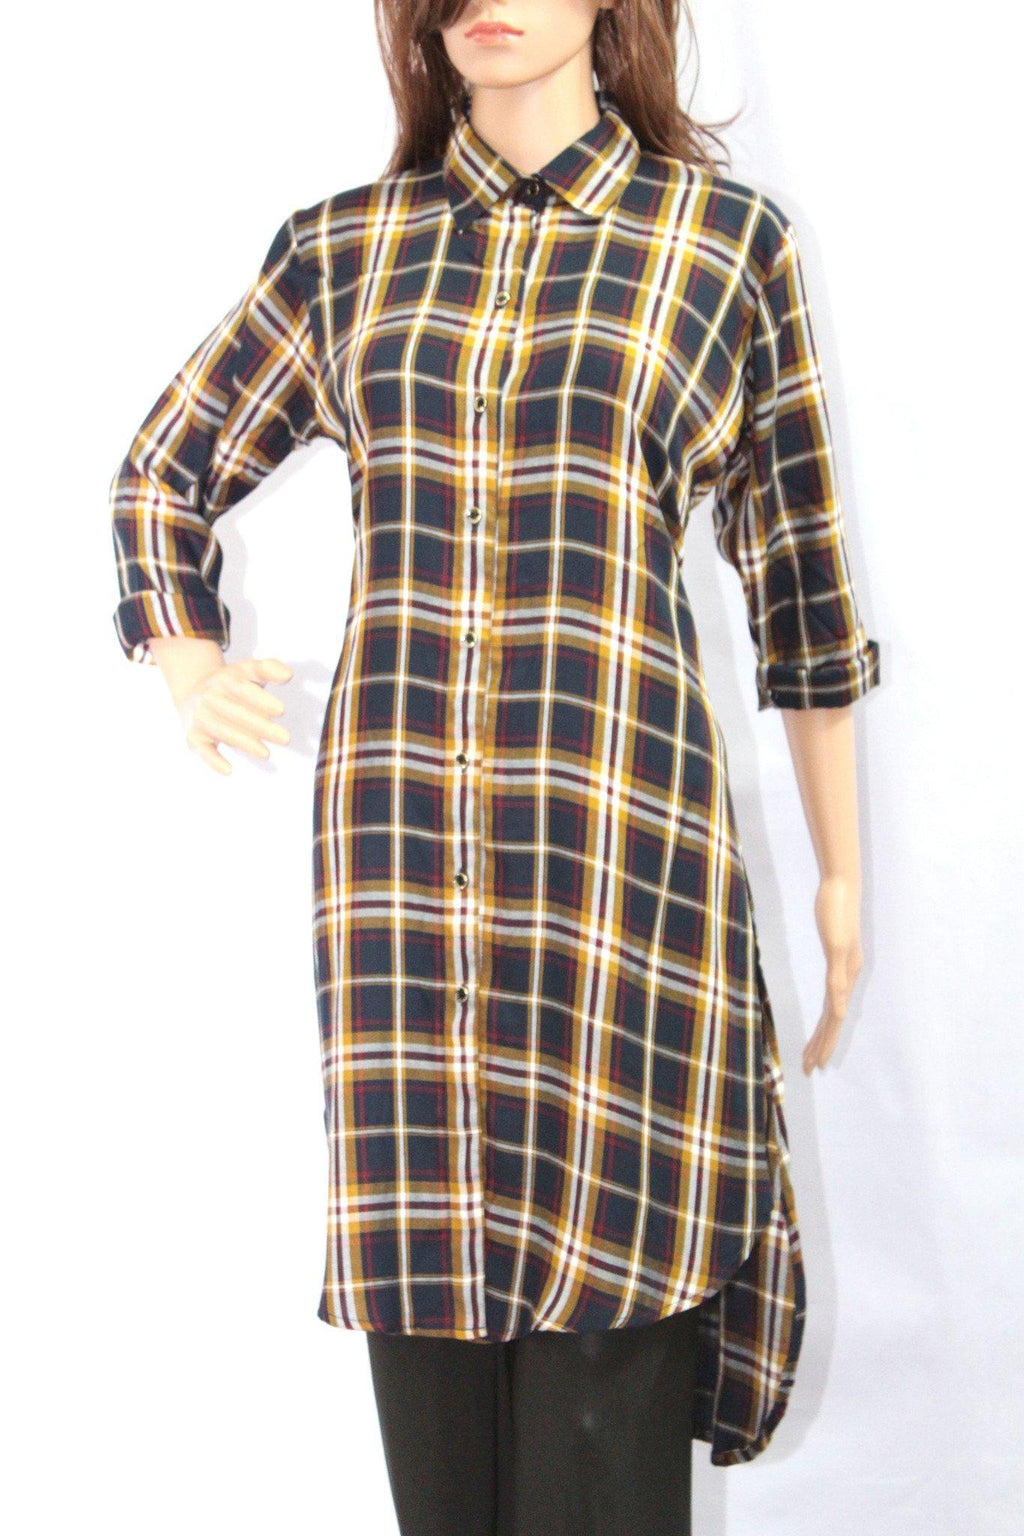 Long Tops (LT-0021)